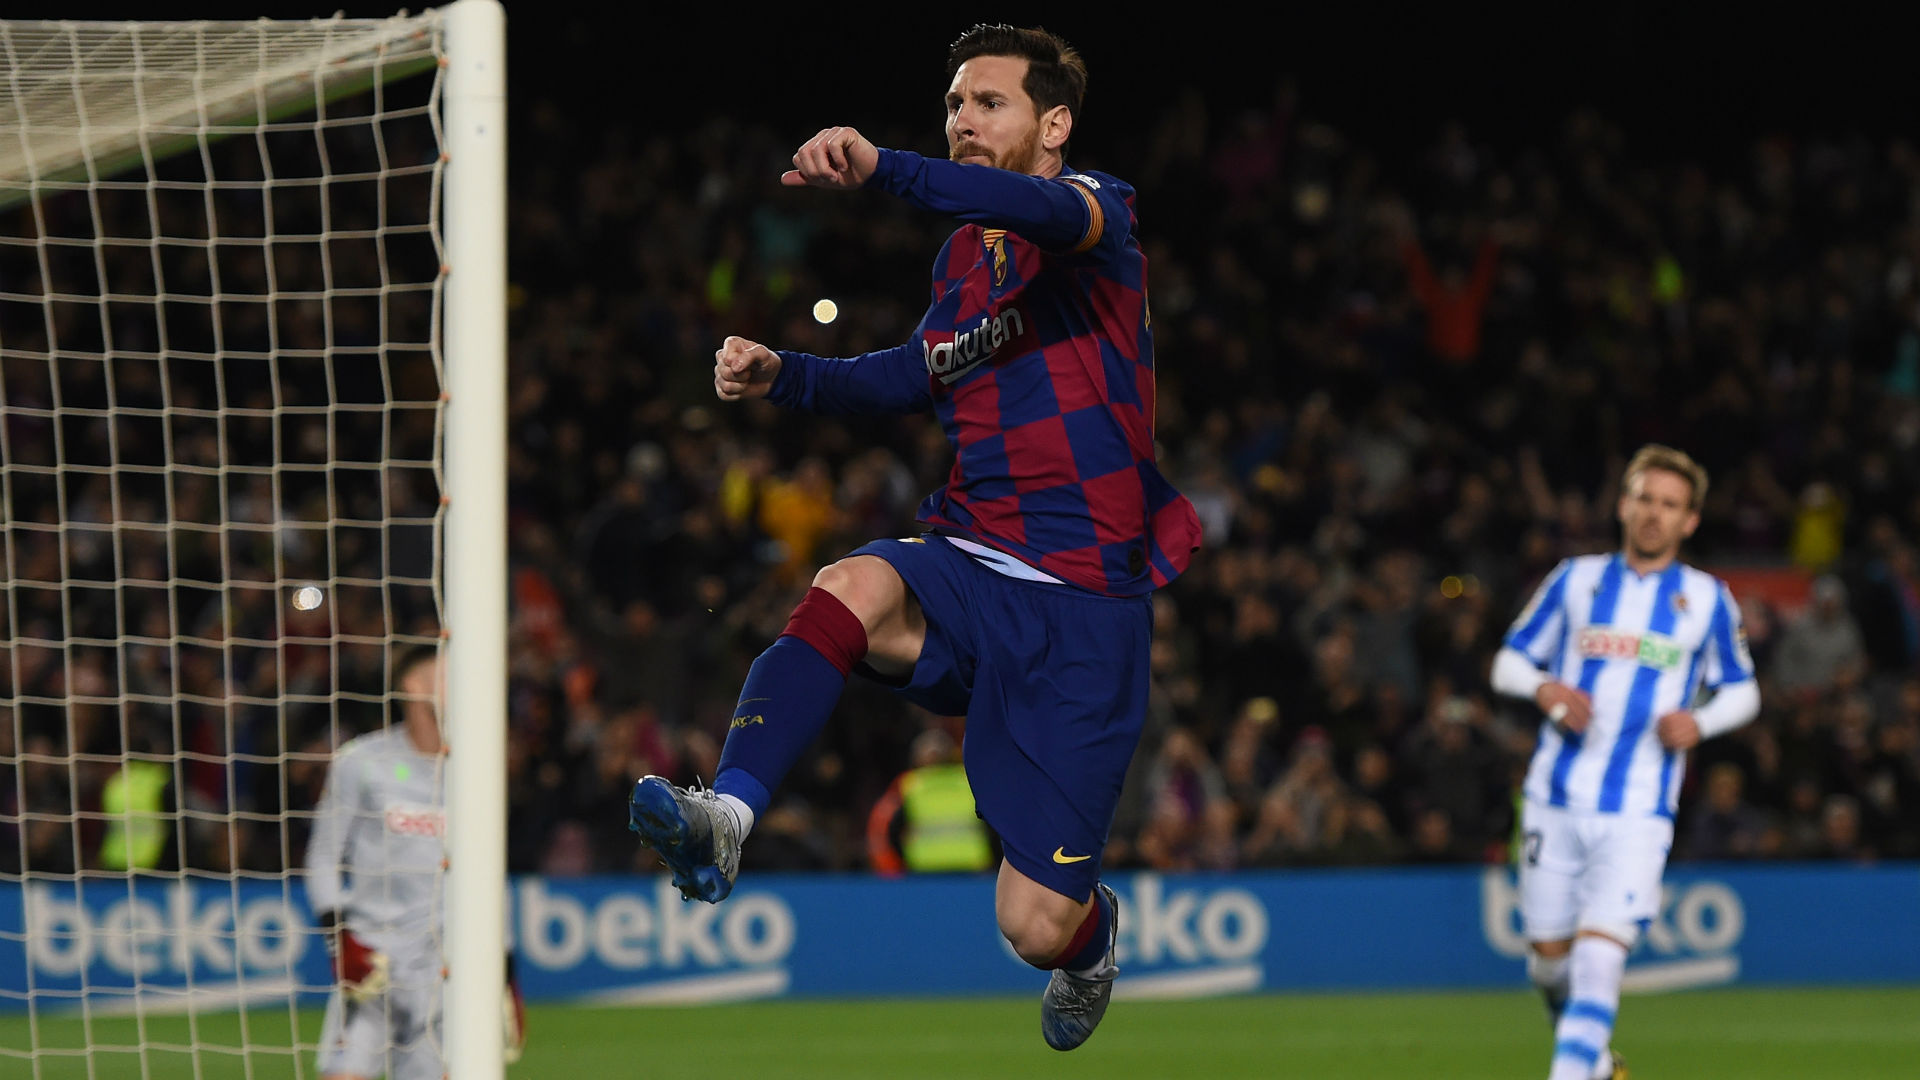 Barcelona 1-0 Real Sociedad: Late Lionel Messi penalty saves hosts